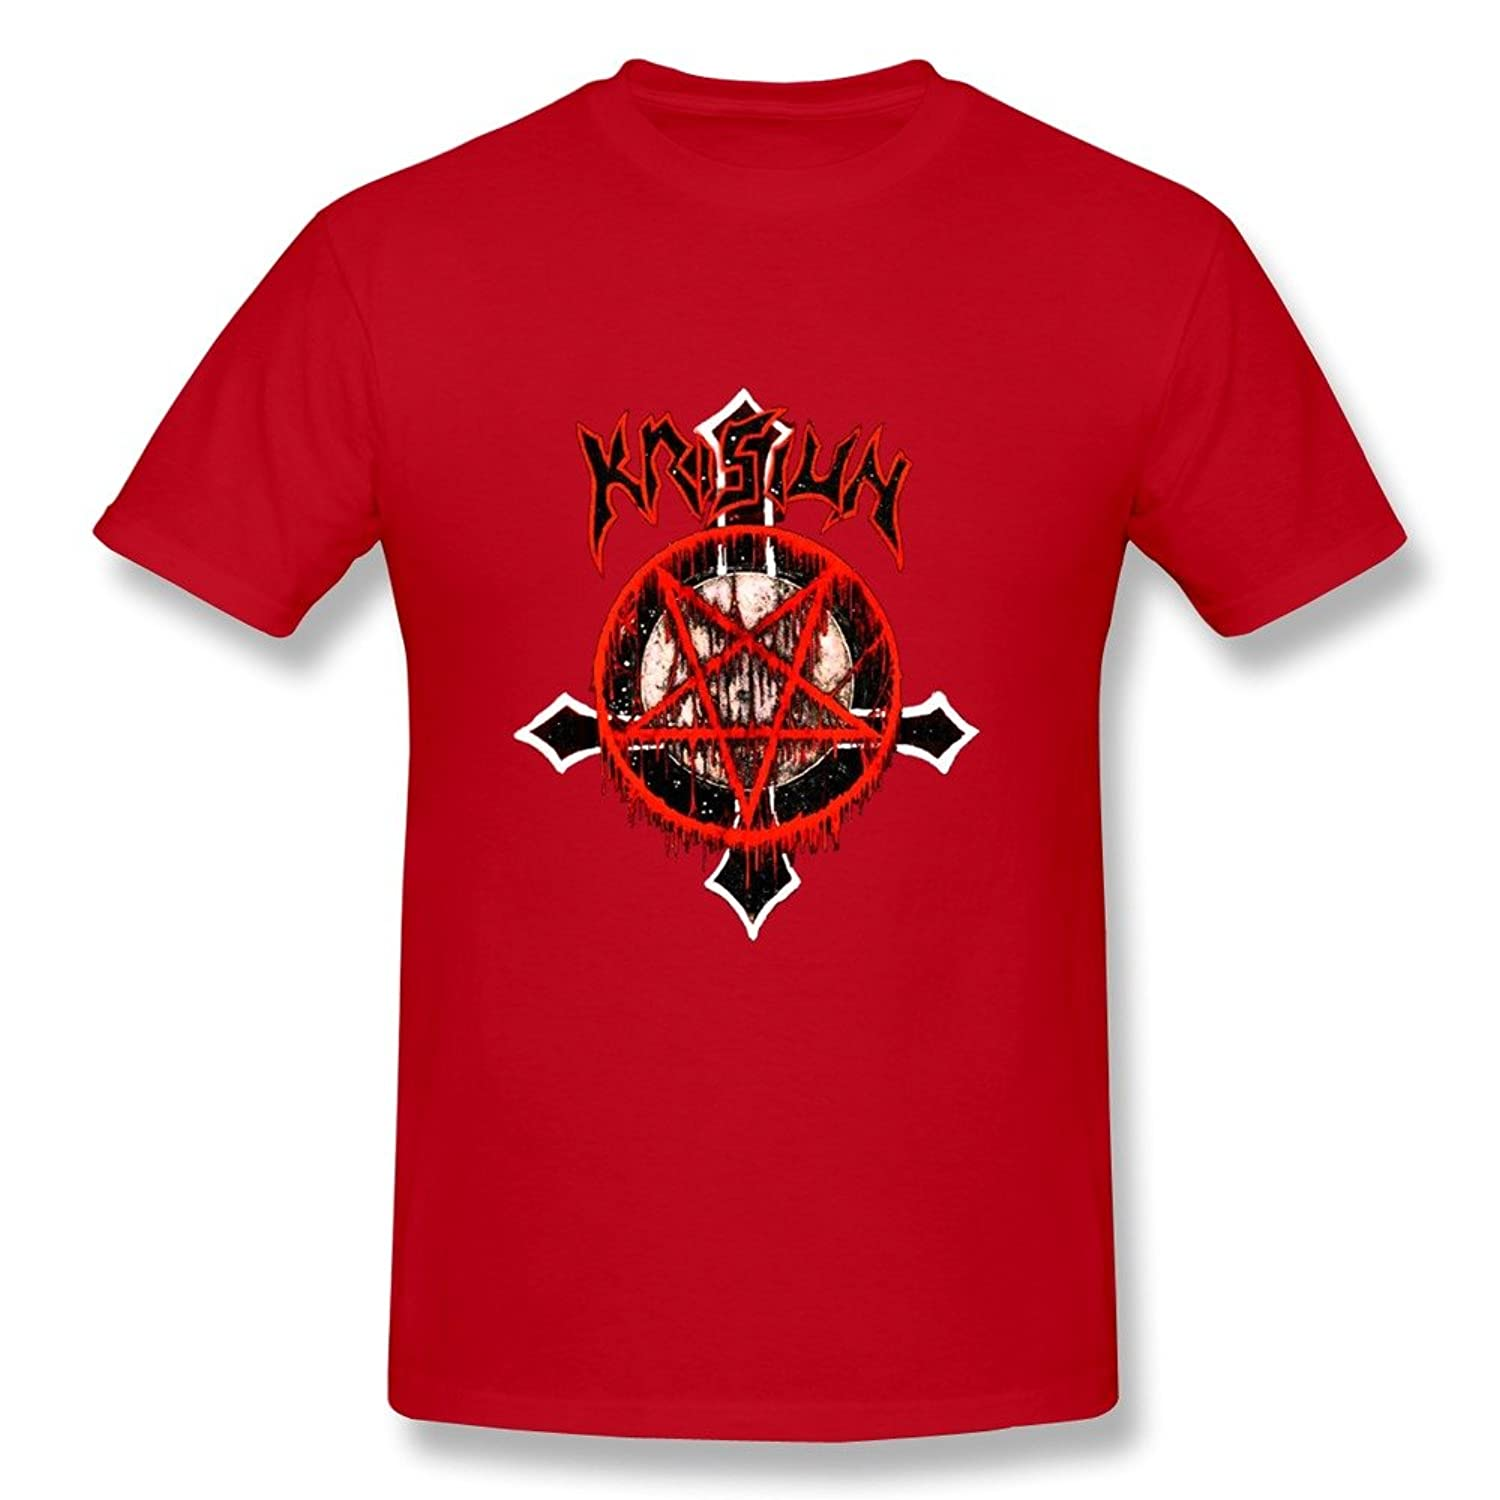 Customize O Neck Cool Krisiun Man Tee Shirt Size XS Red